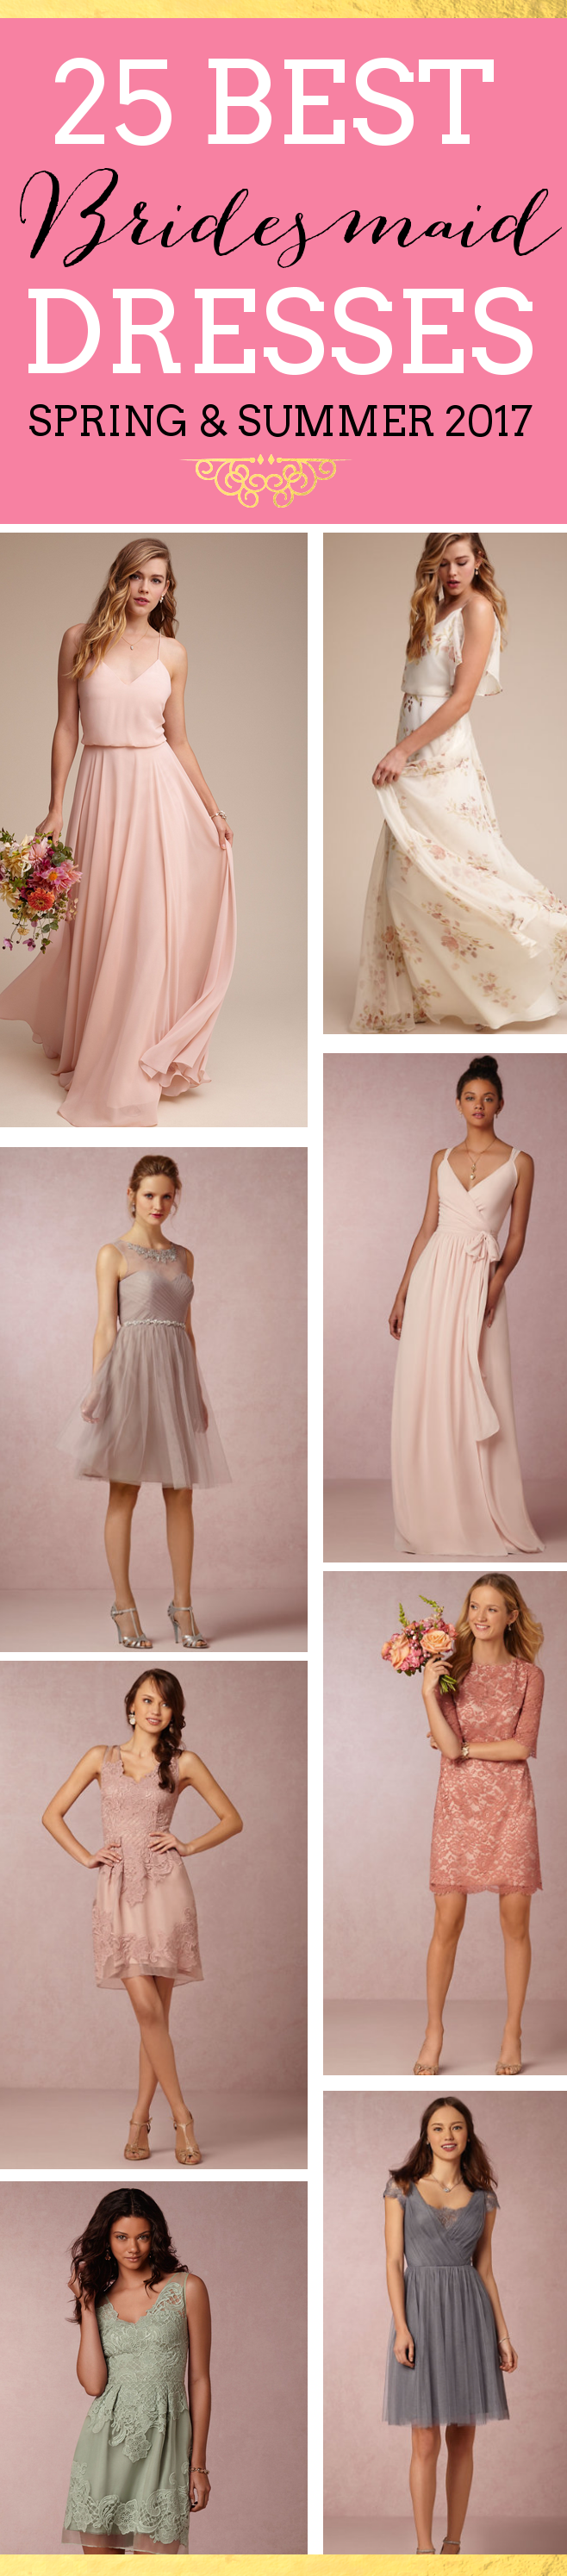 25 Best Bridesmaid Dresses for Spring Weddings - 2017